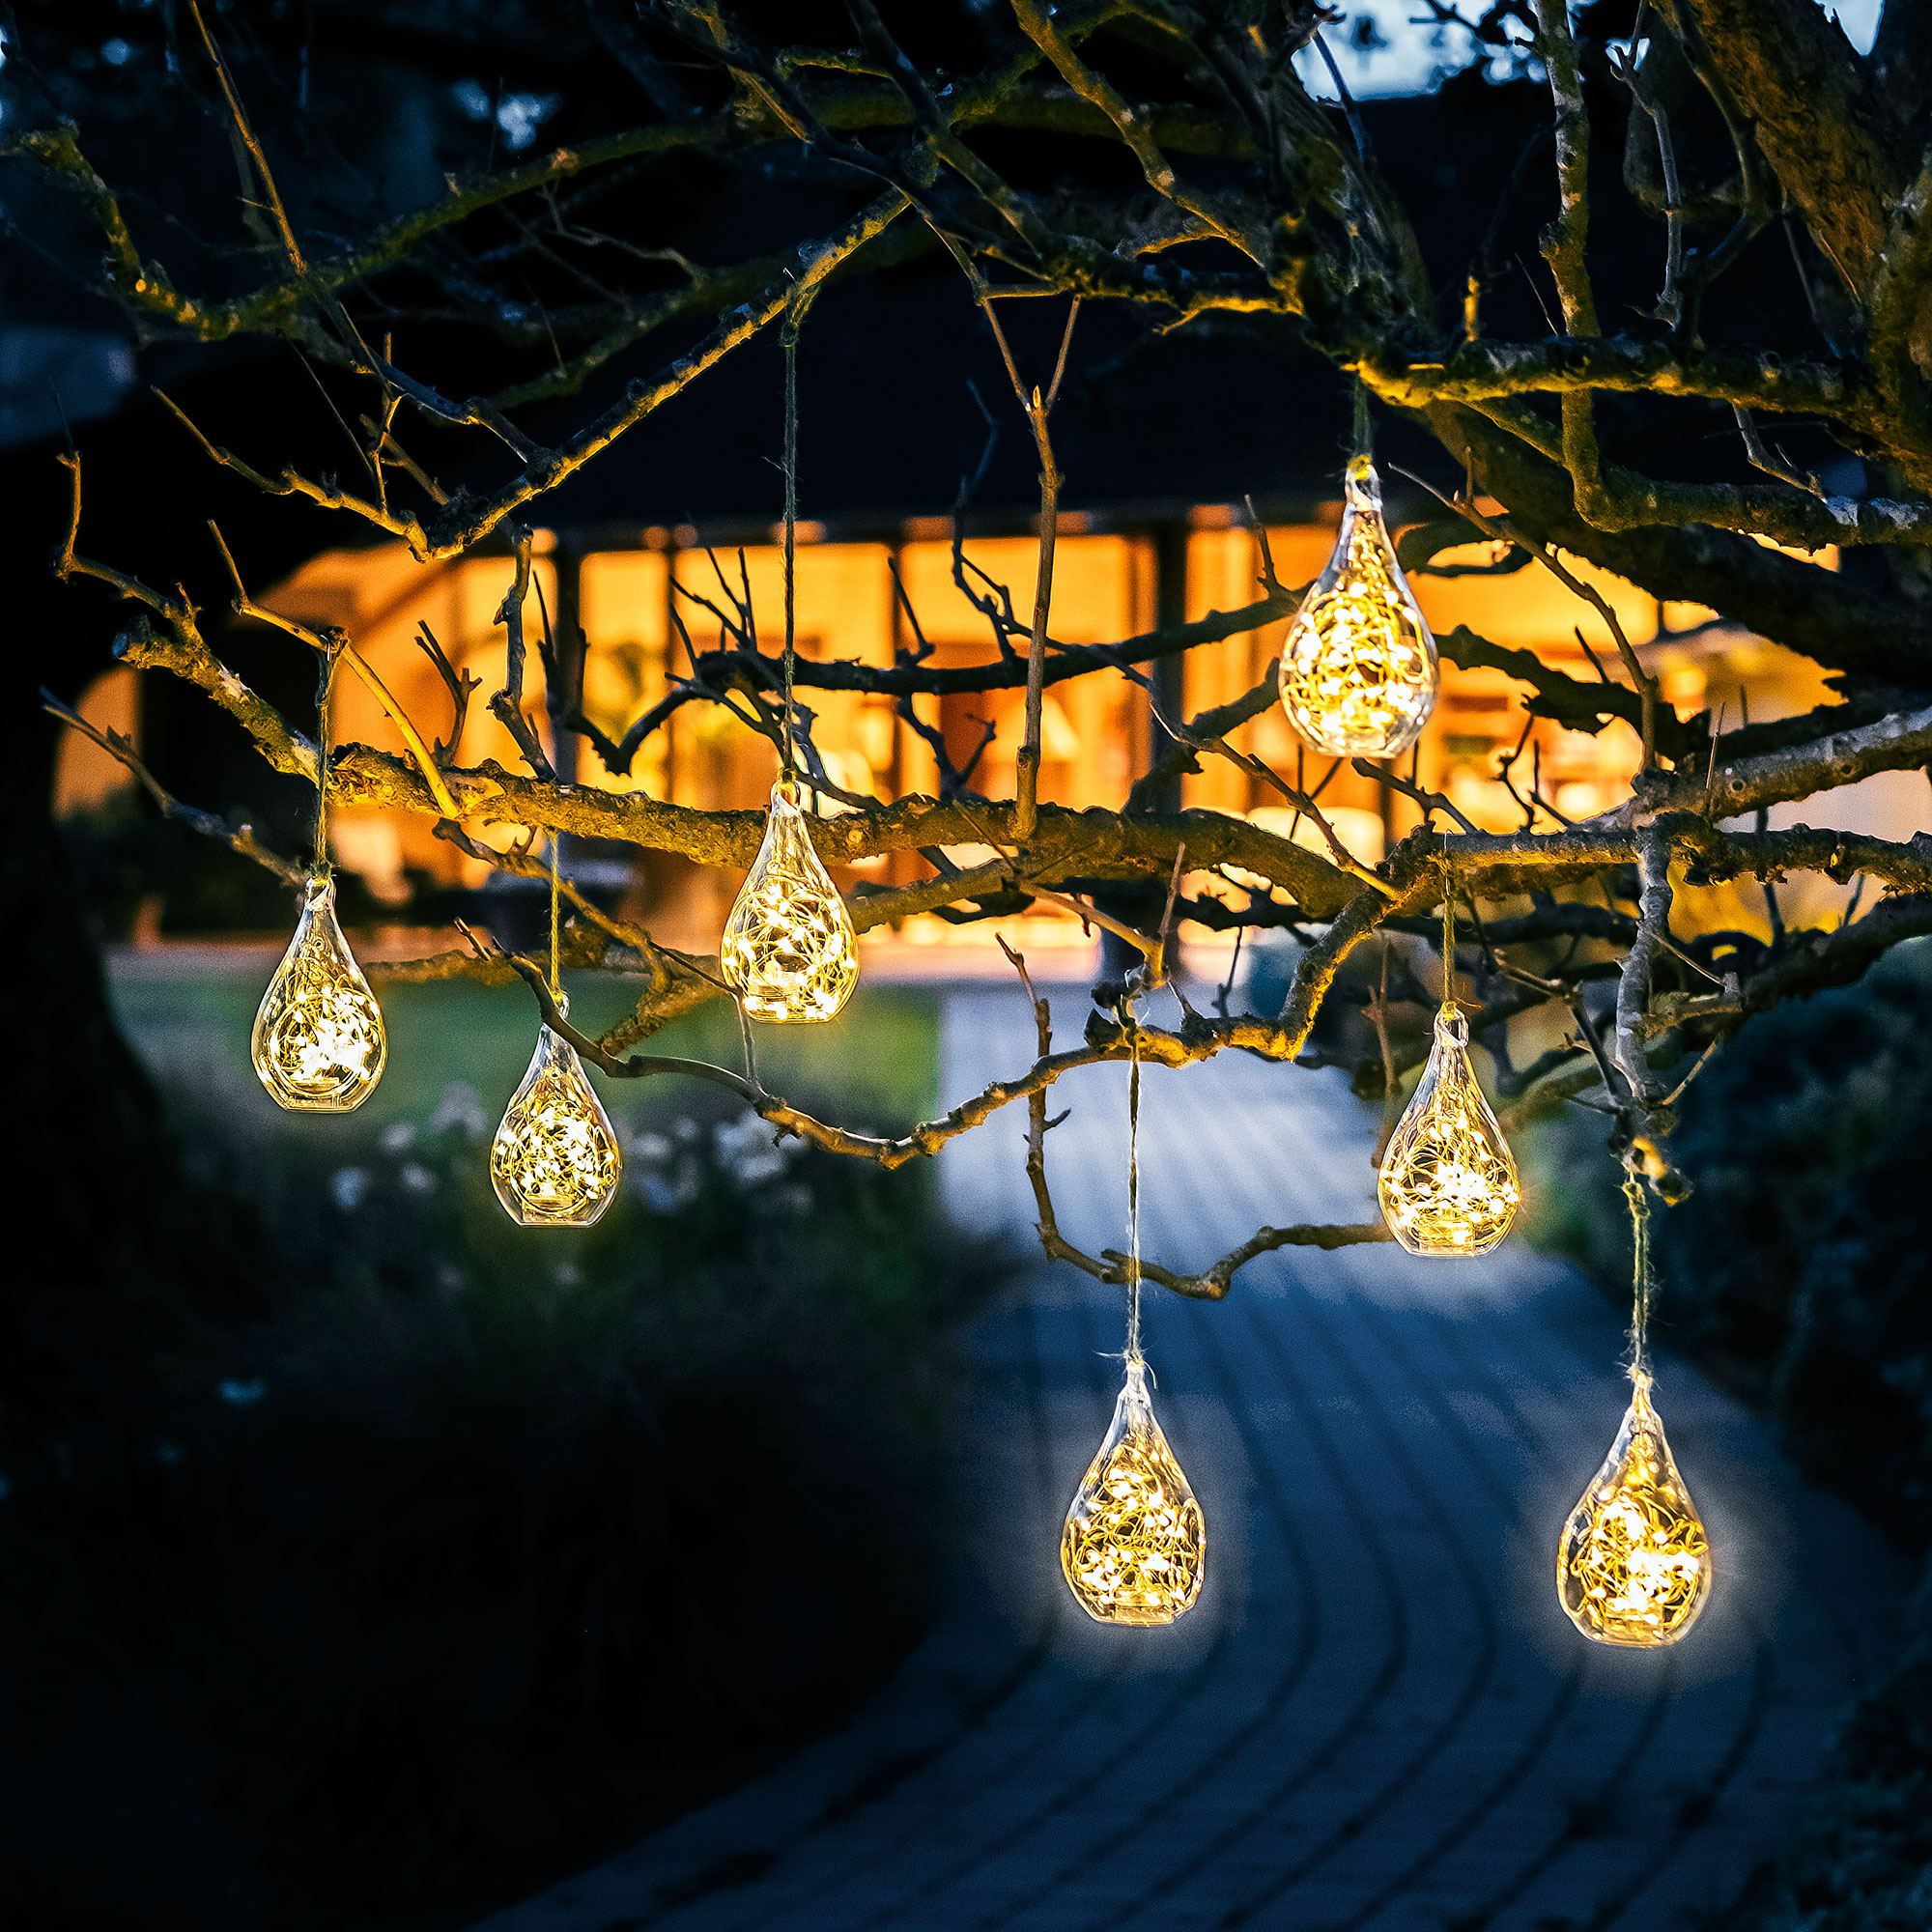 outdoor holiday lighting ideas. 7 Ideas For Outdoor Holiday Lights Lighting E